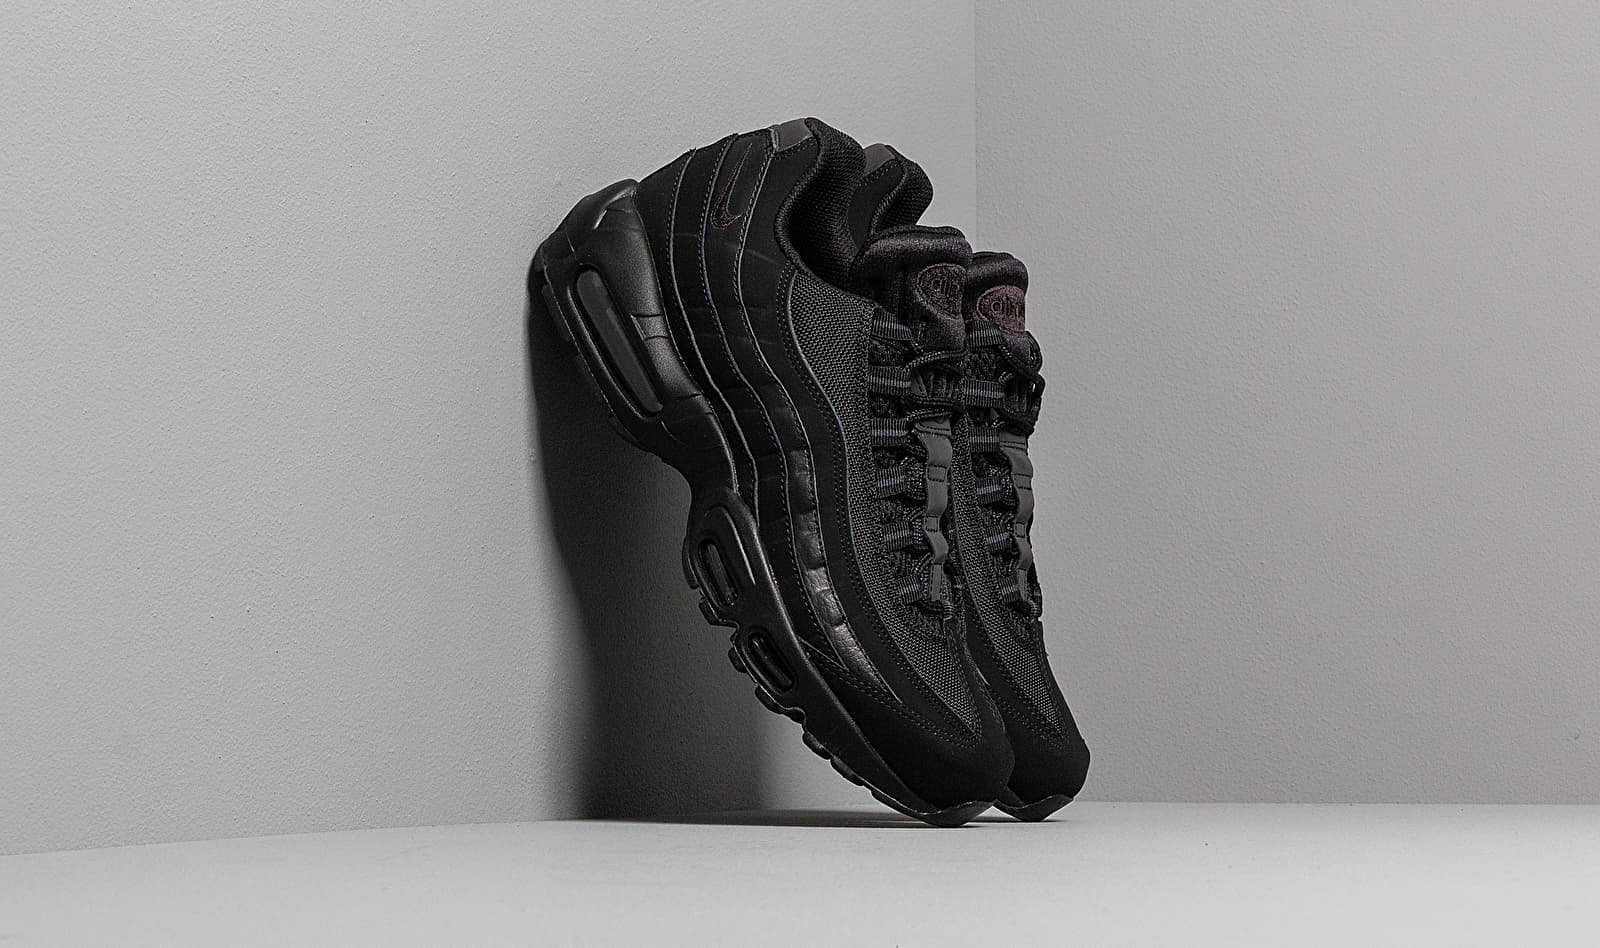 Nike Air Max '95 Black/ Black-Anthracite EUR 44